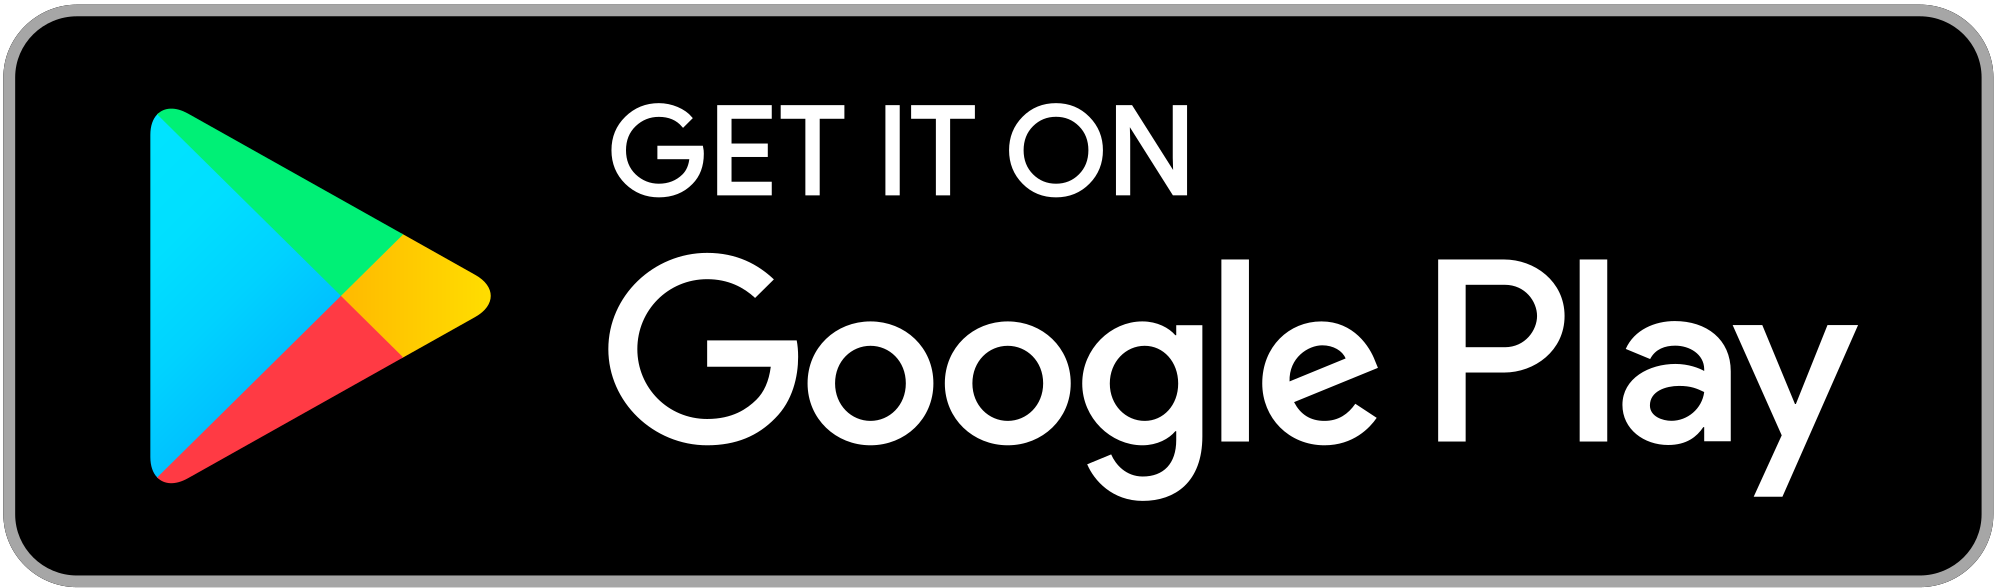 Get It On Google Play Badge PNG - 110340